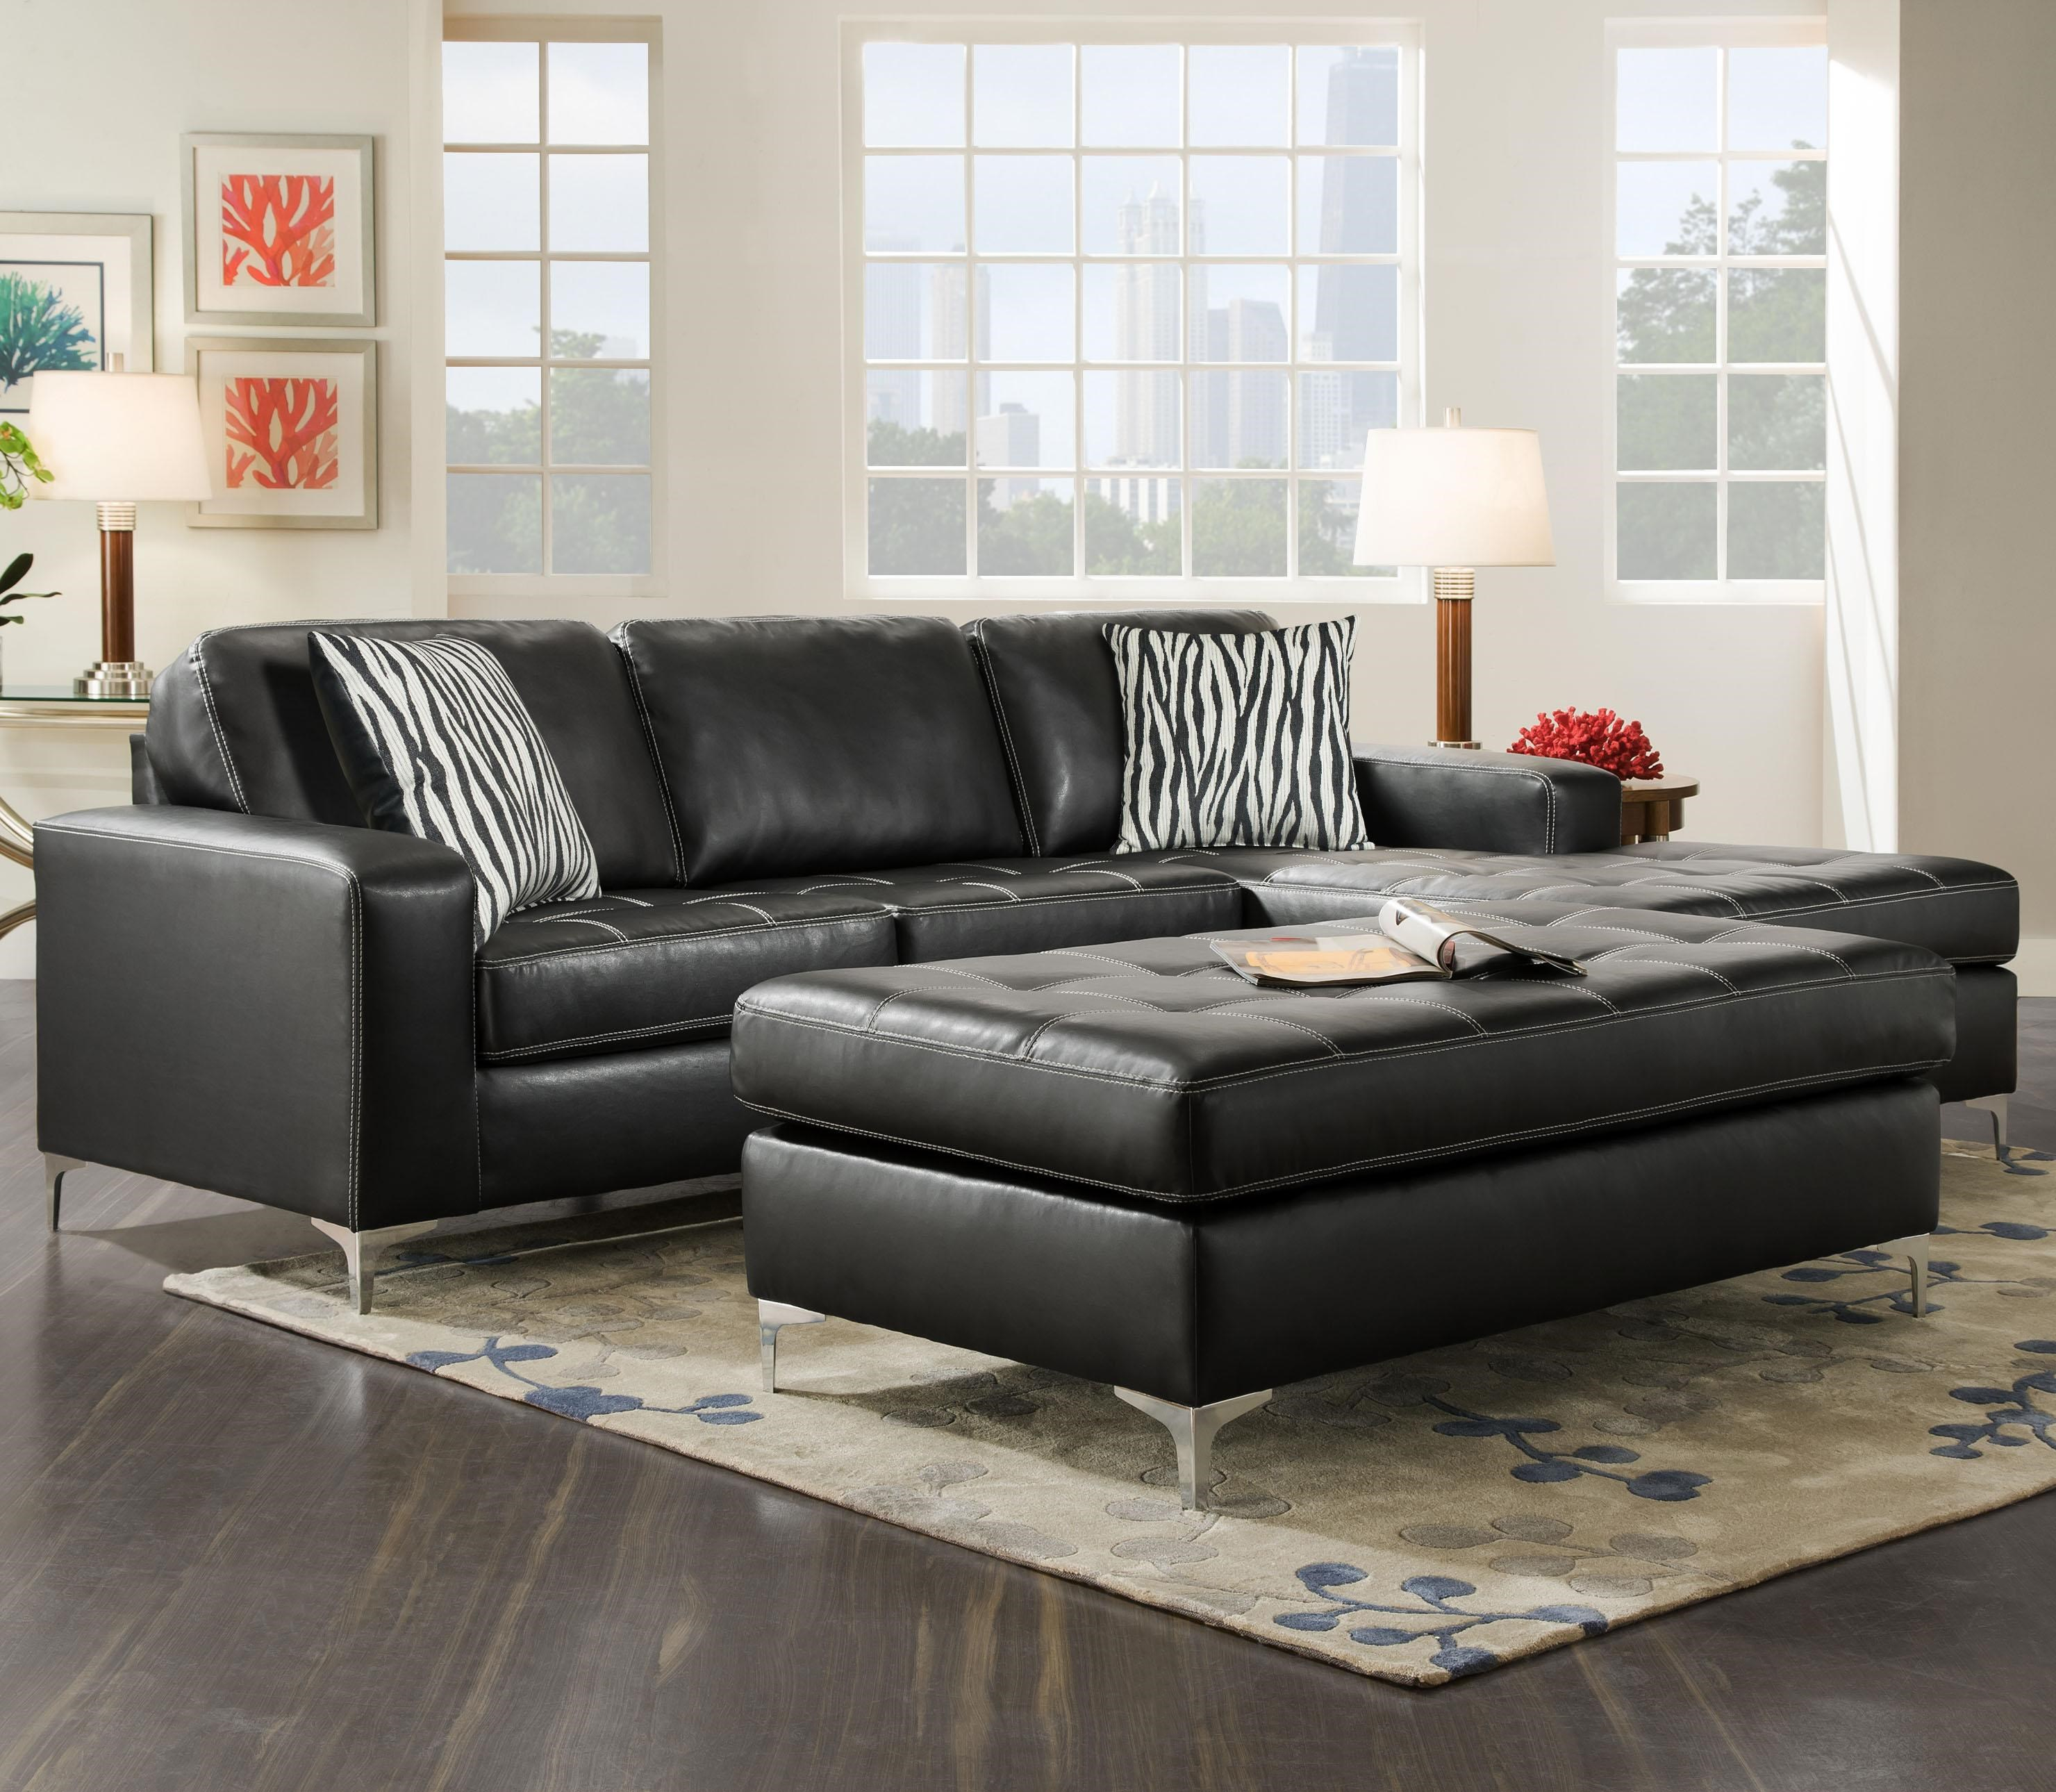 American Furniture 7400 Three Seat Sectional with Right Side Chaise - Miskelly Furniture - Sofa Sectional  sc 1 st  Miskelly Furniture : american furniture sectional - Sectionals, Sofas & Couches